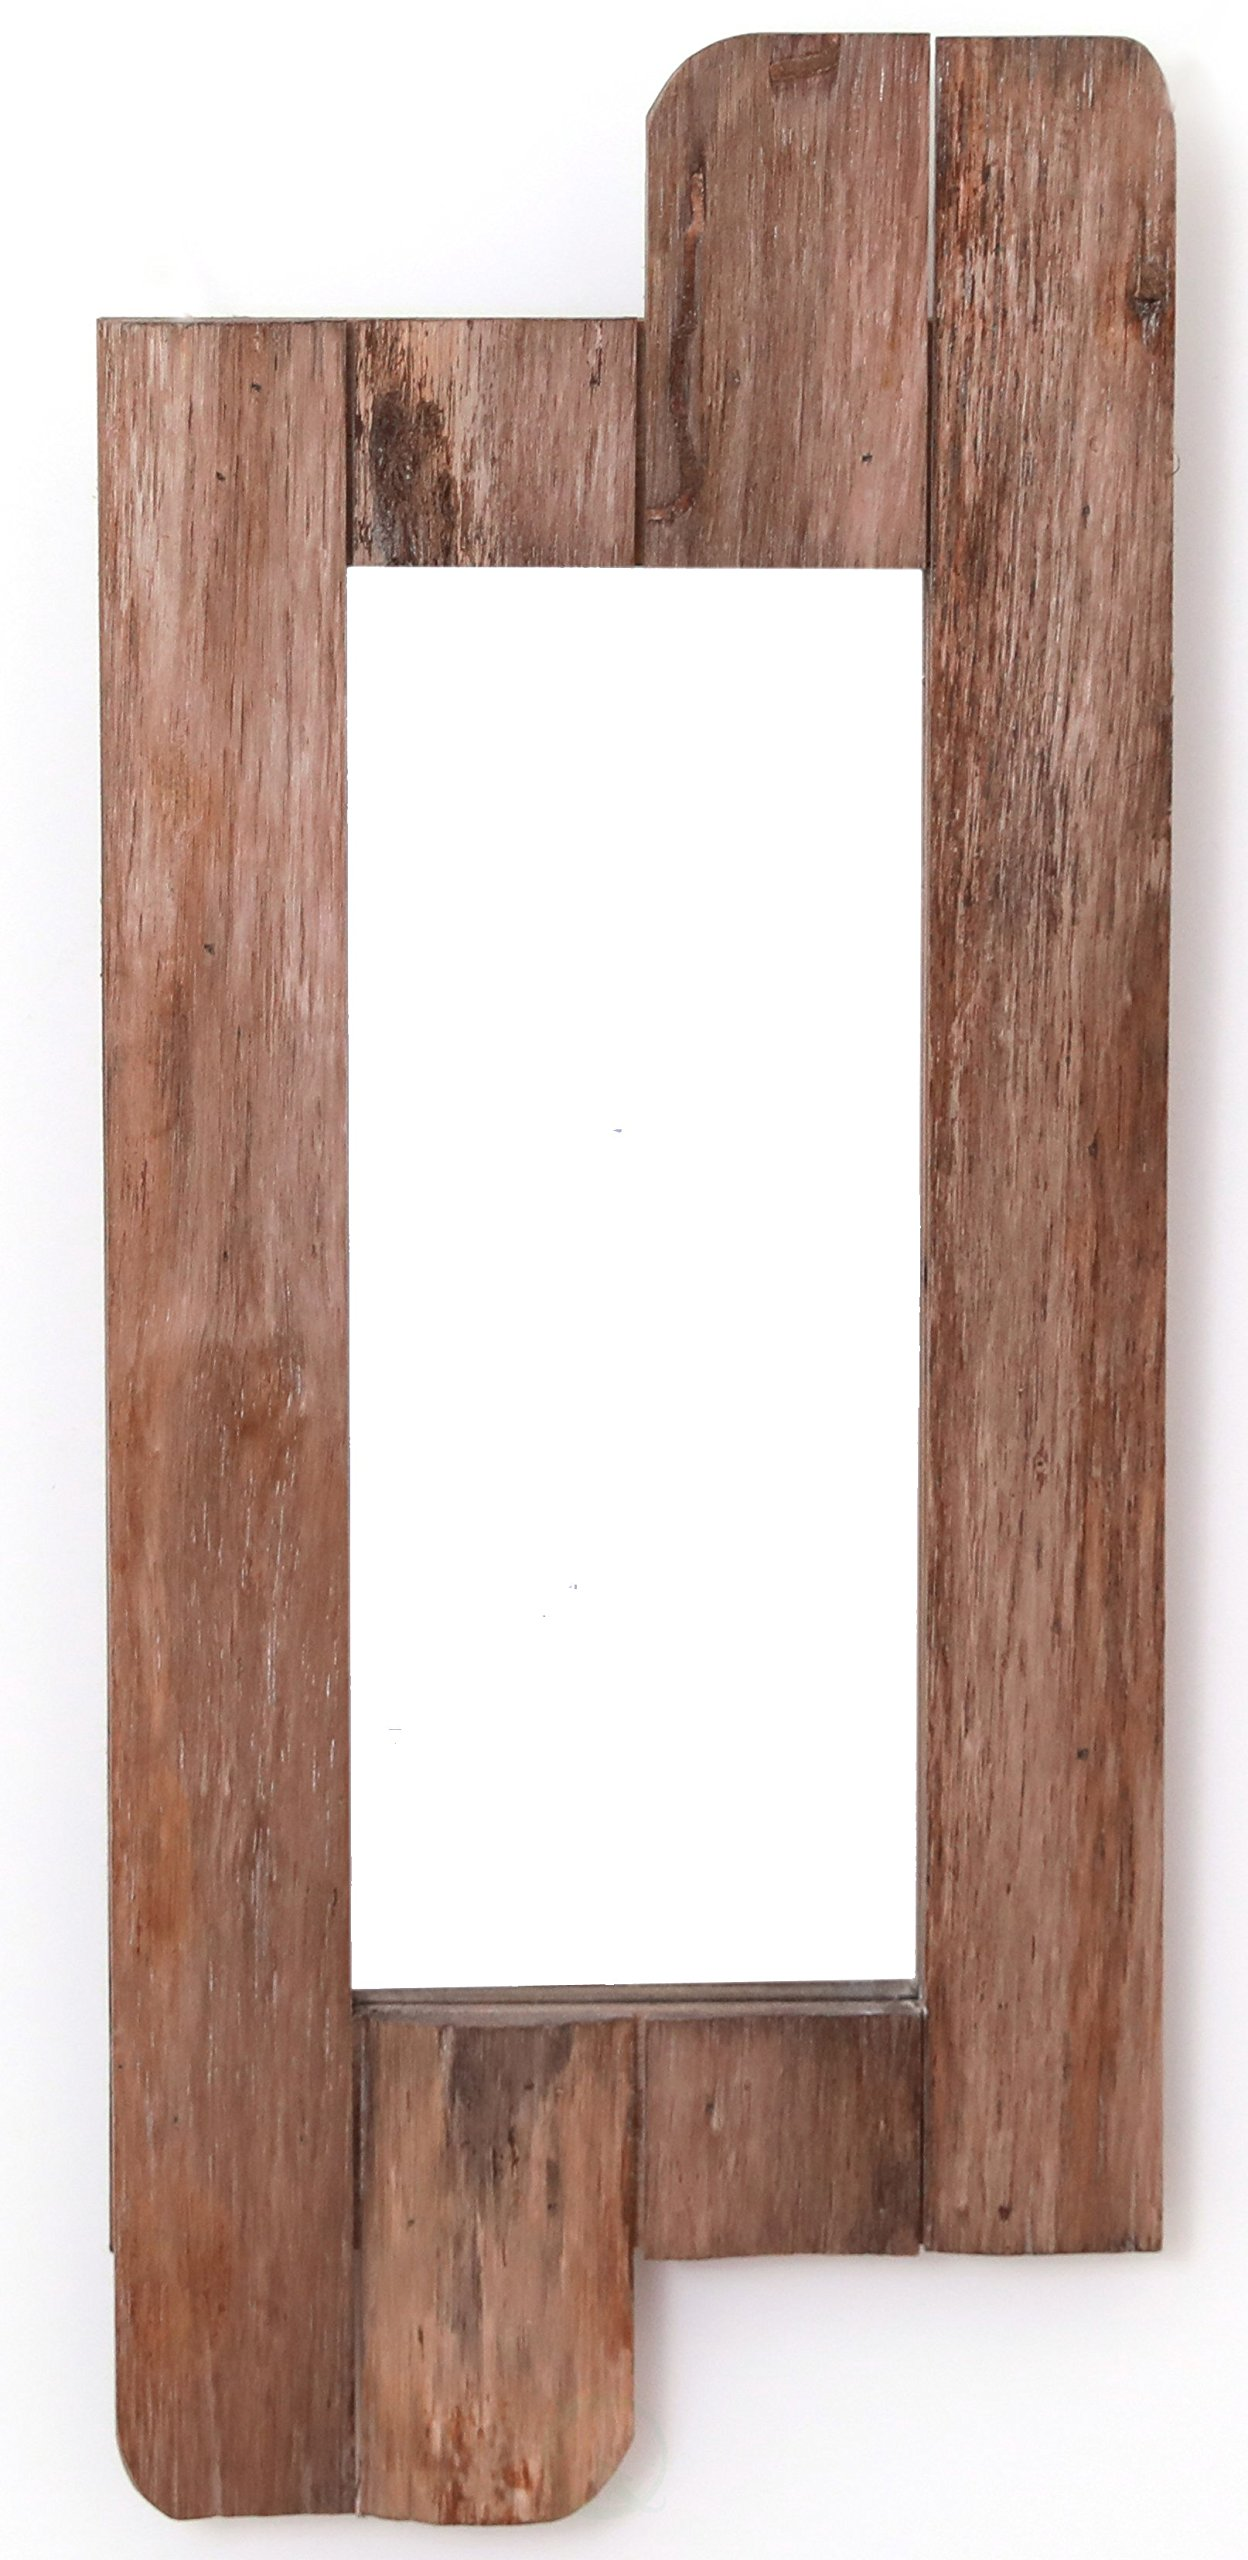 Vintiquewise QI003368.S 28'' High Rustic Natural Barn Wood Framed Wall Mirror